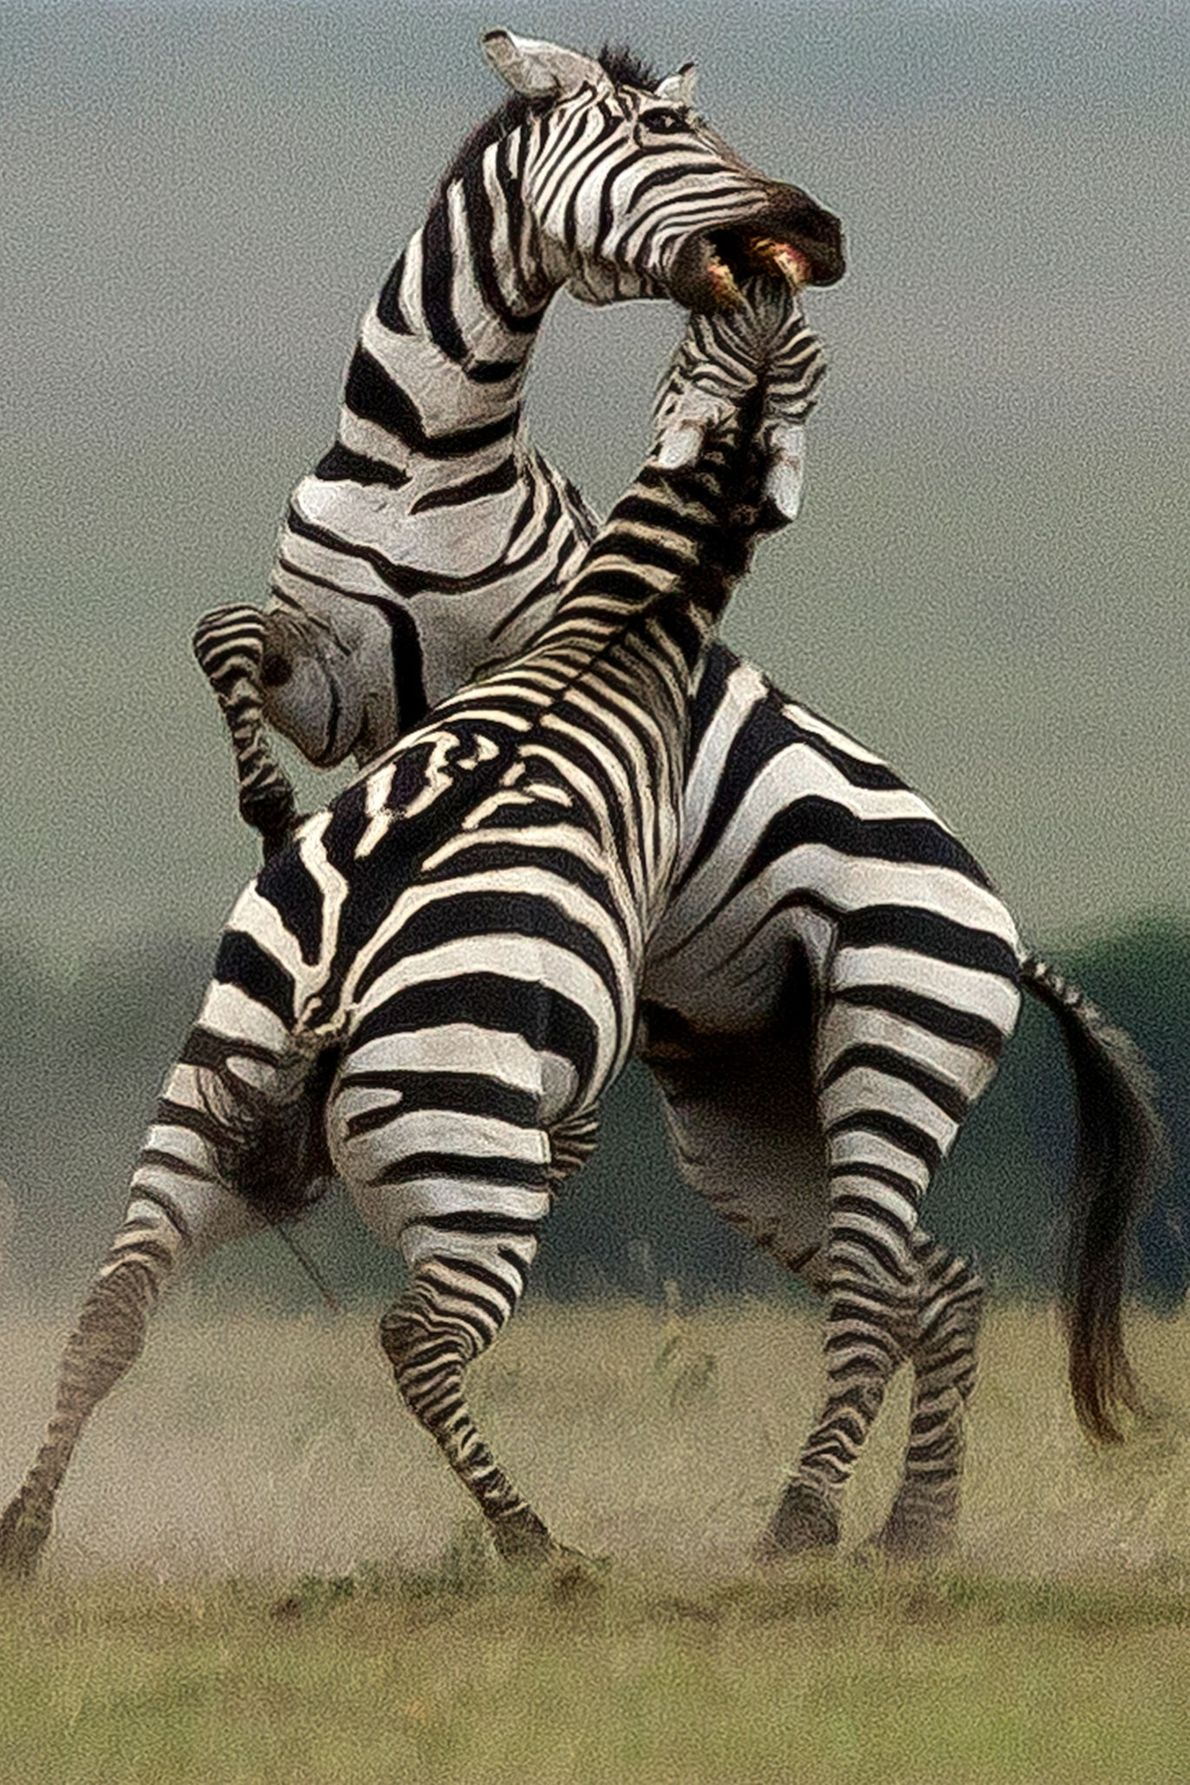 Two zebras charge each other.